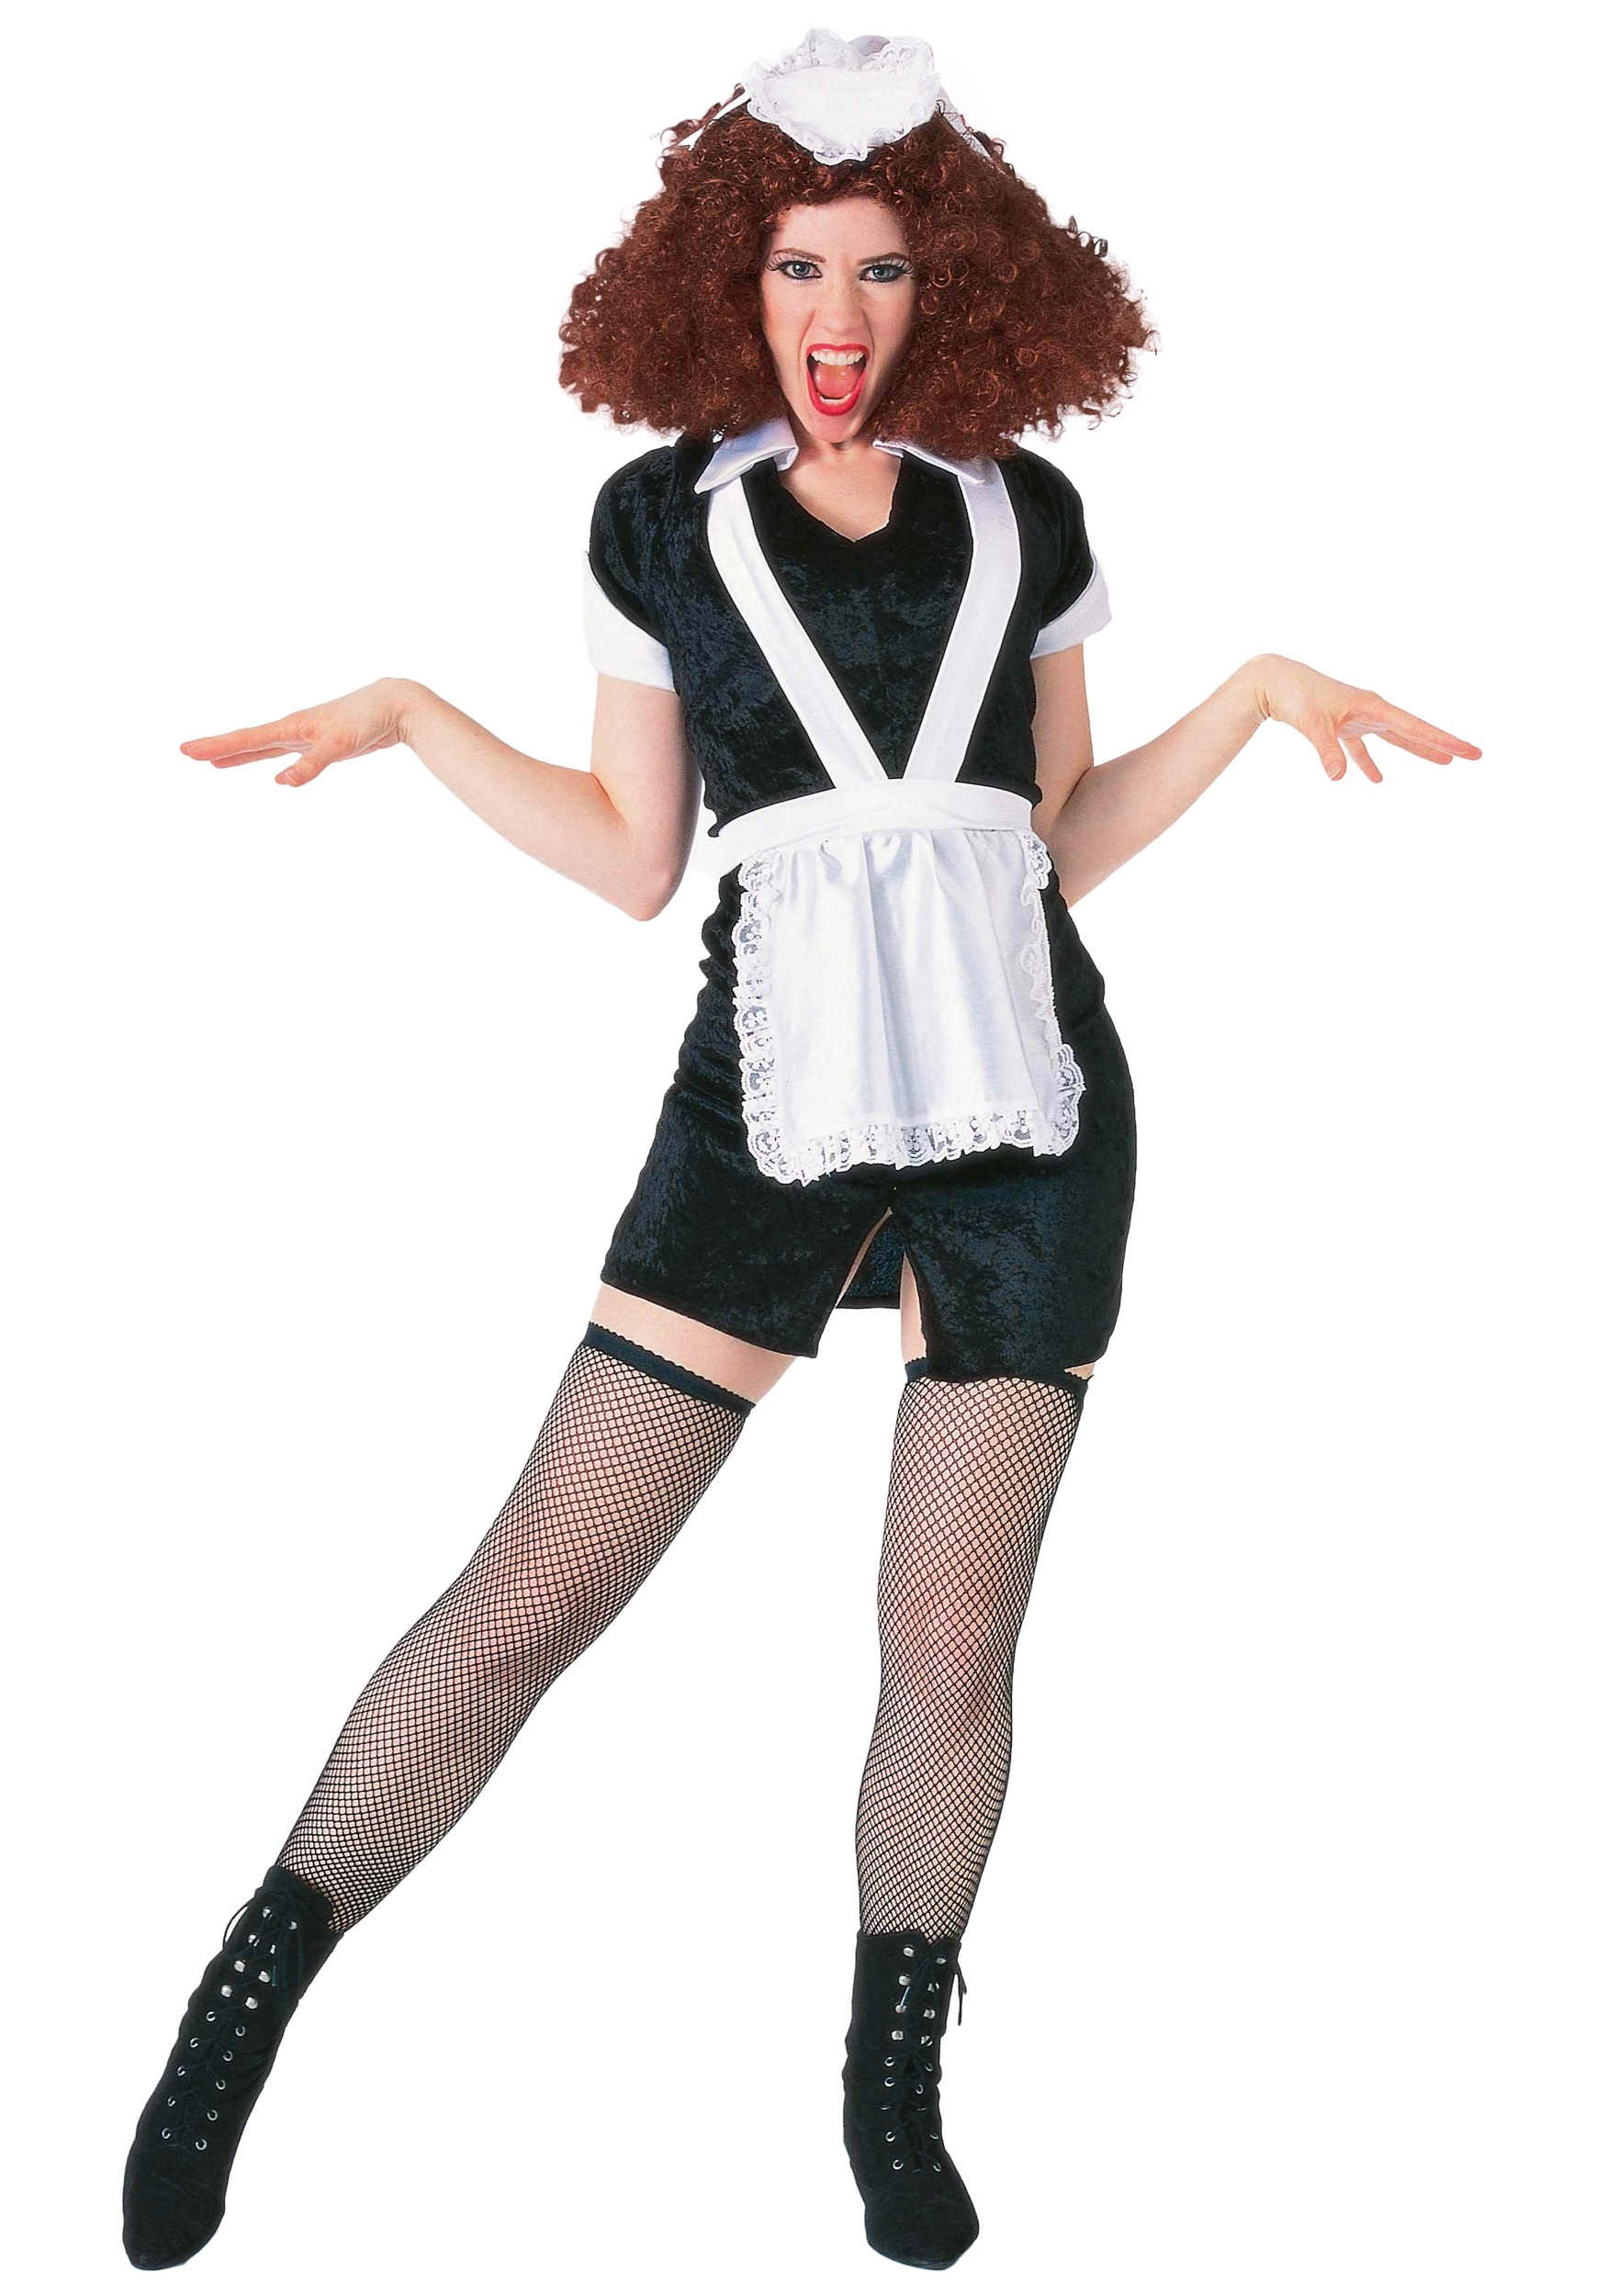 rocky horror picture show costumes - licensed rocky horror character